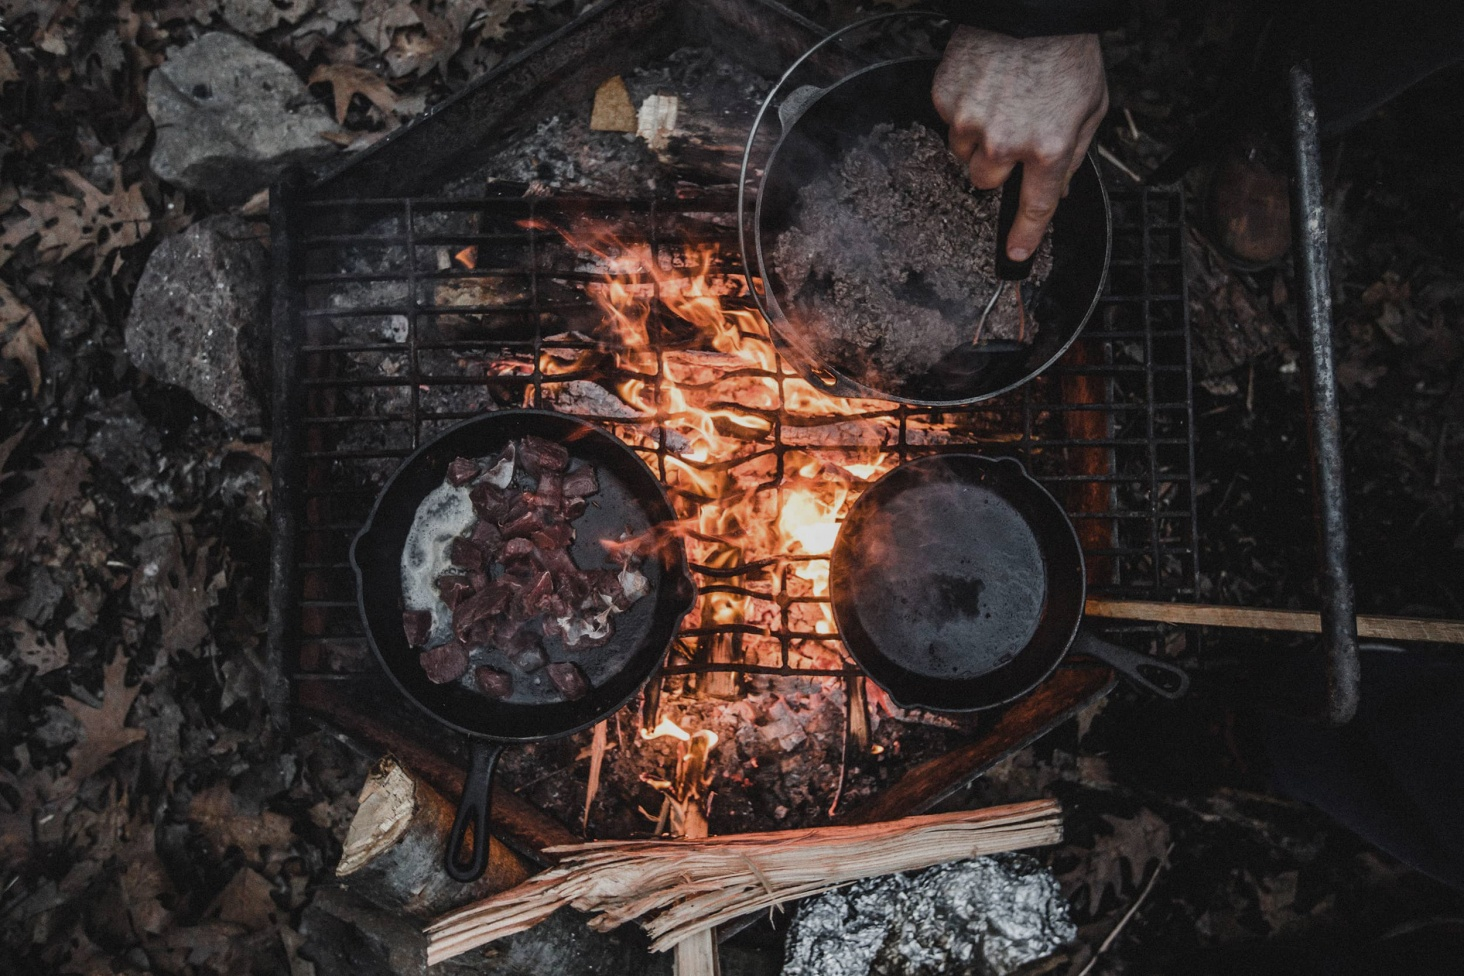 Outdoor Küche Camping Rezepte : Camping cuisine what to cook outdoors inspiration für die wild